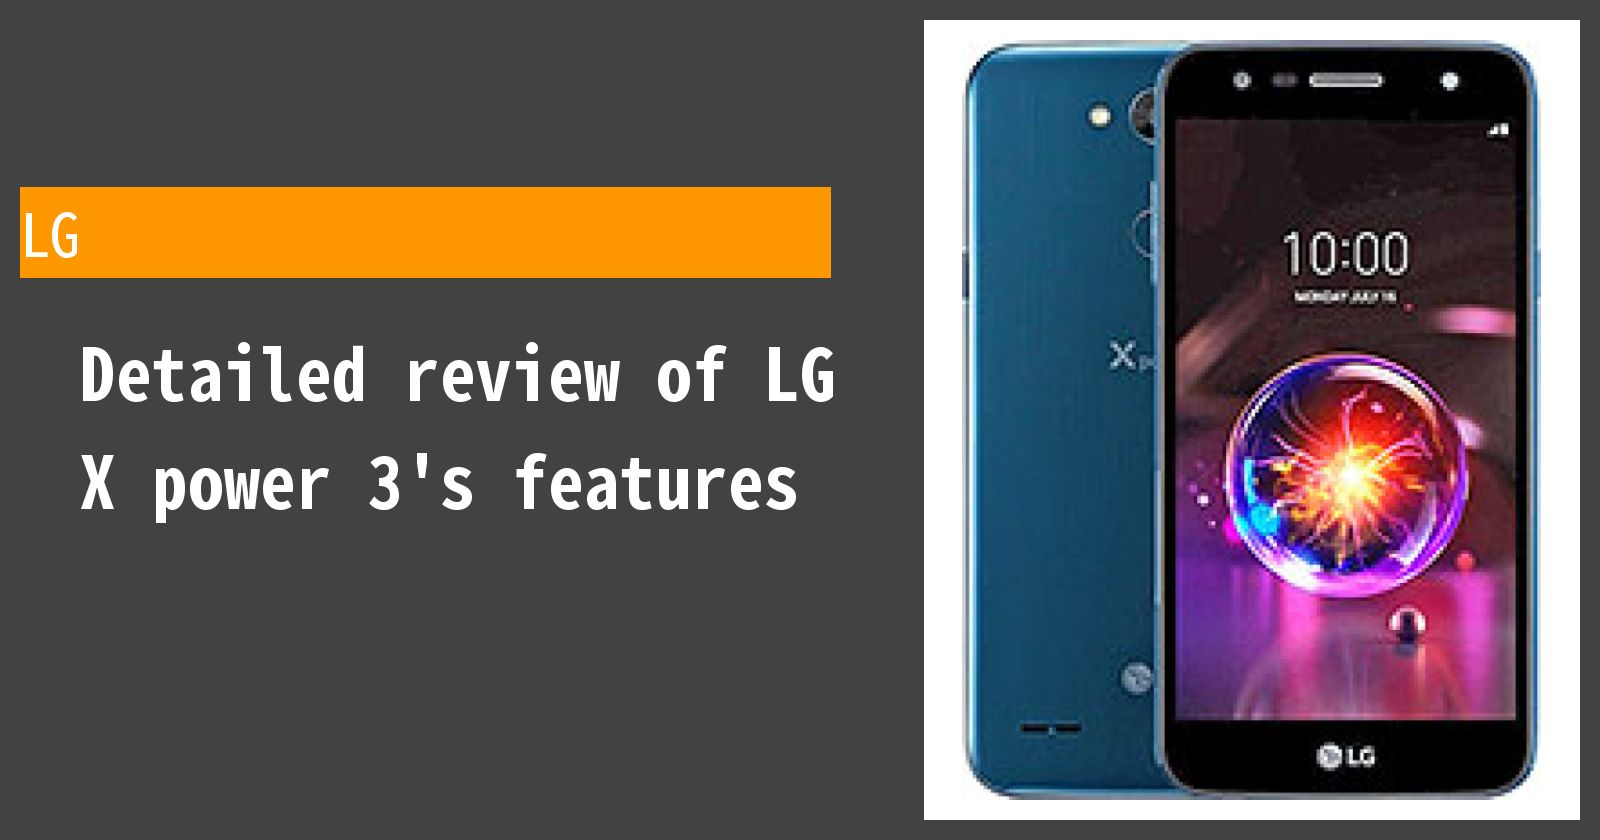 Detailed review of LG X power 3's features